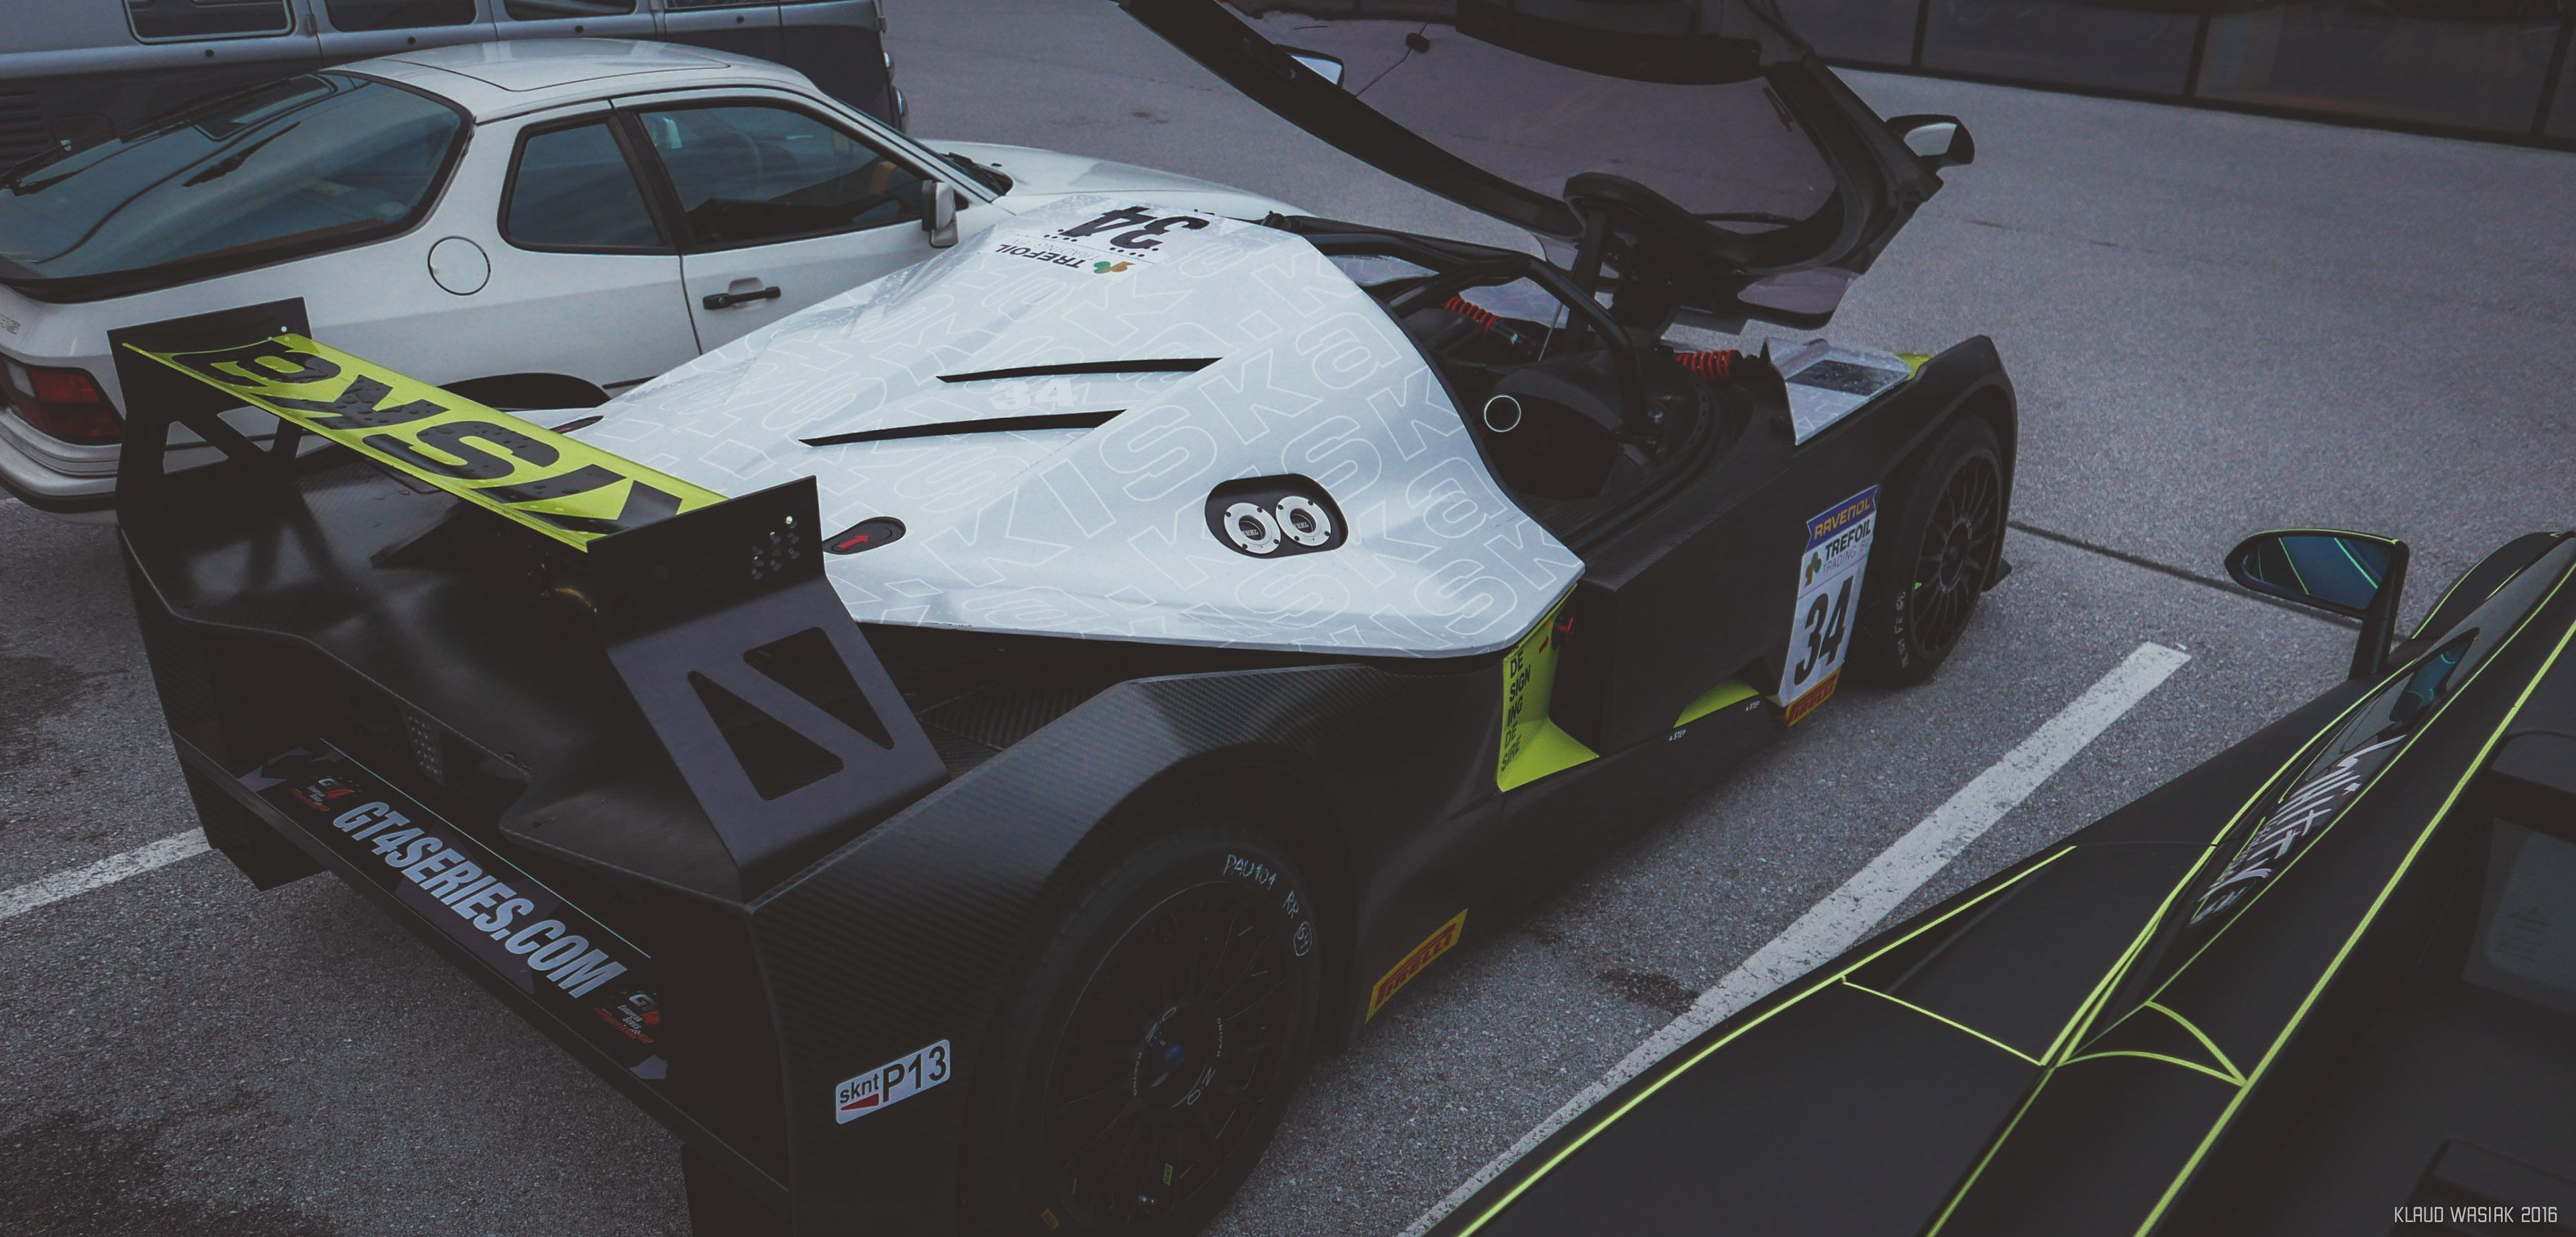 The KTM X Bow GT4 was designed to race and here it is sitting pretty